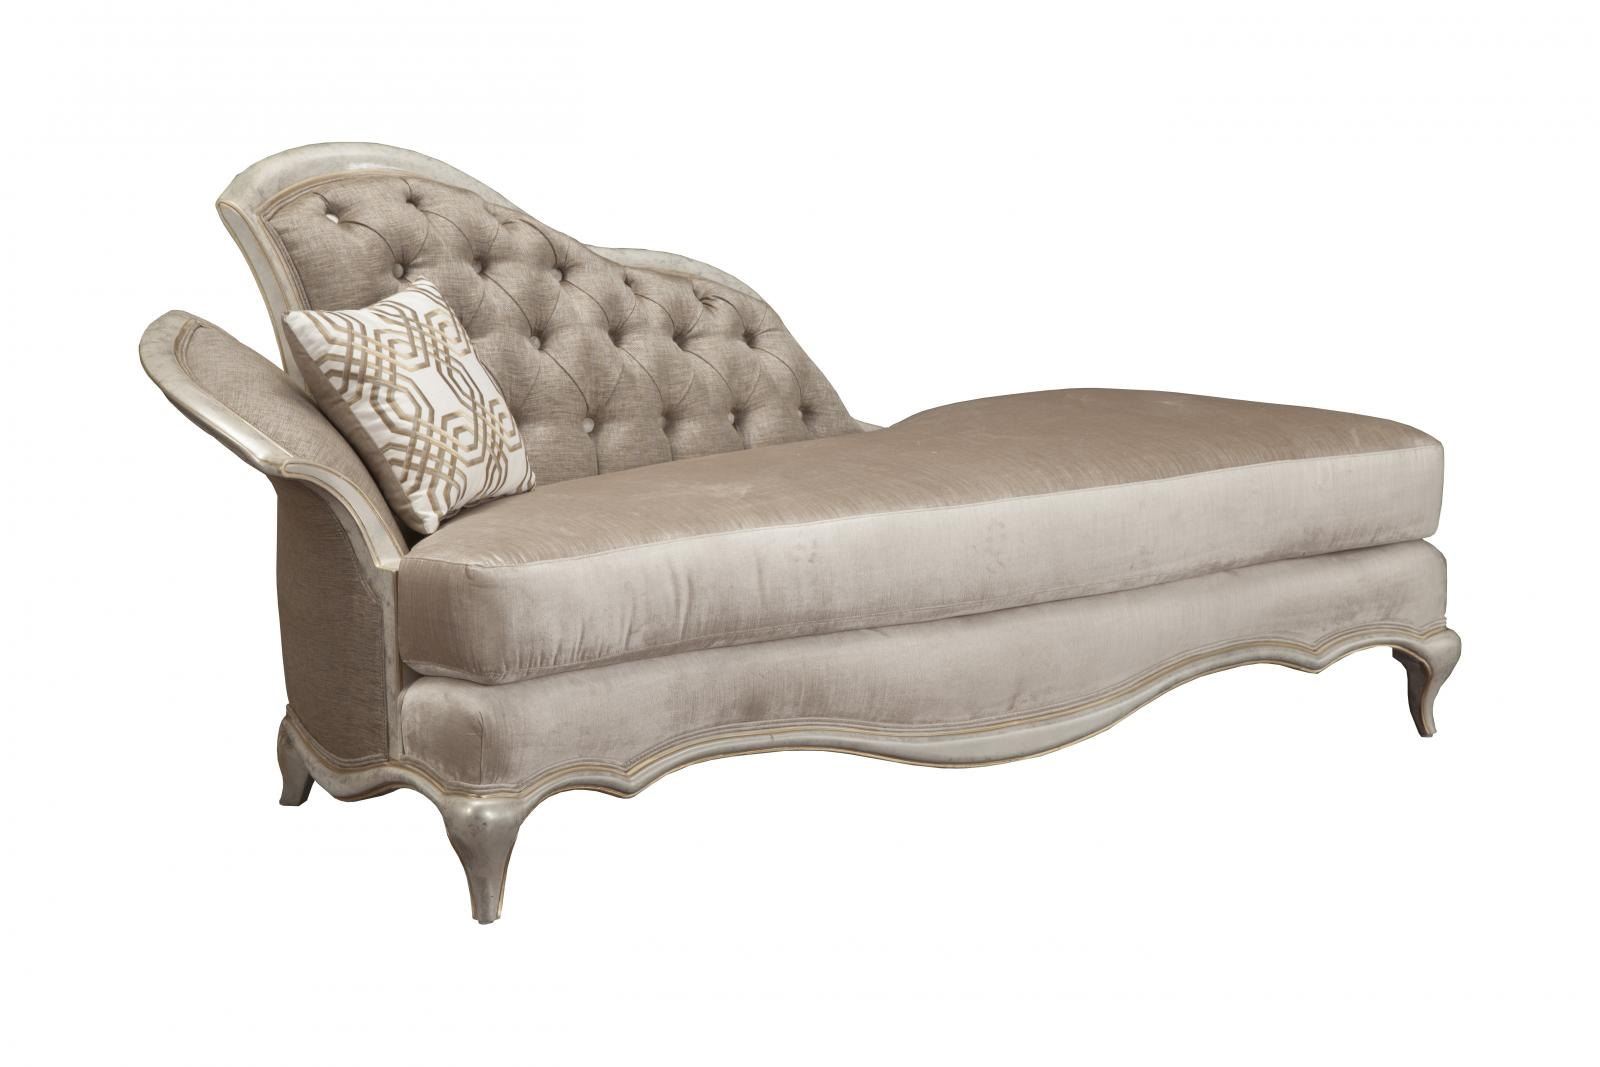 Classic, Traditional Gold, Silver, Pearl Chenille and Fabric, Wood, Solid Hardwood Chaise Lounge 1 pcs Perlita by Benneti